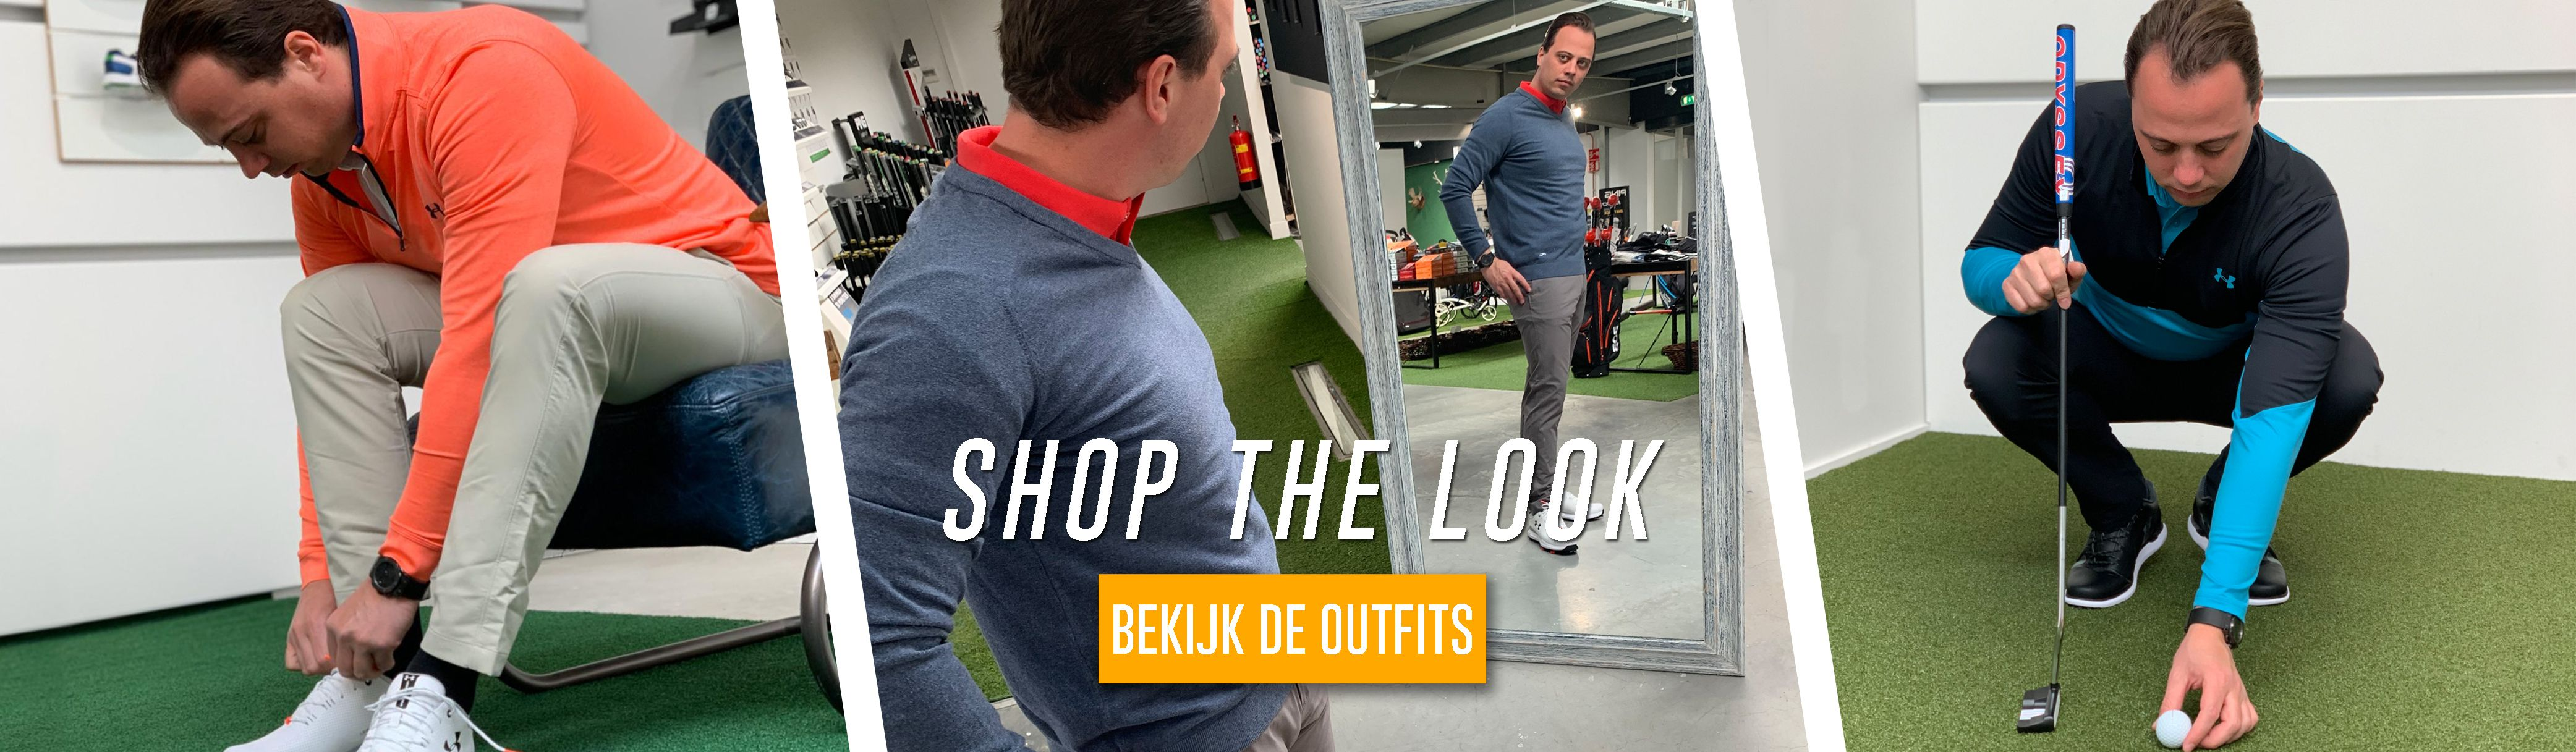 Golf Outfit Shop the Look